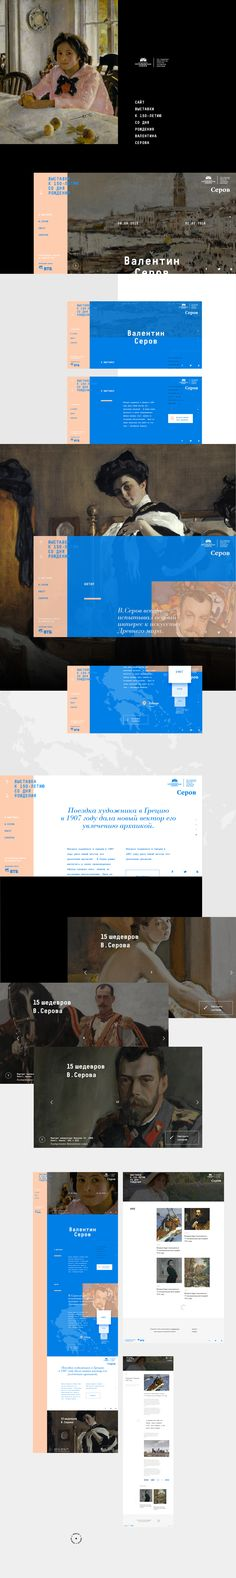 Serov Valentin 150 years anniversary exhibition on Behance